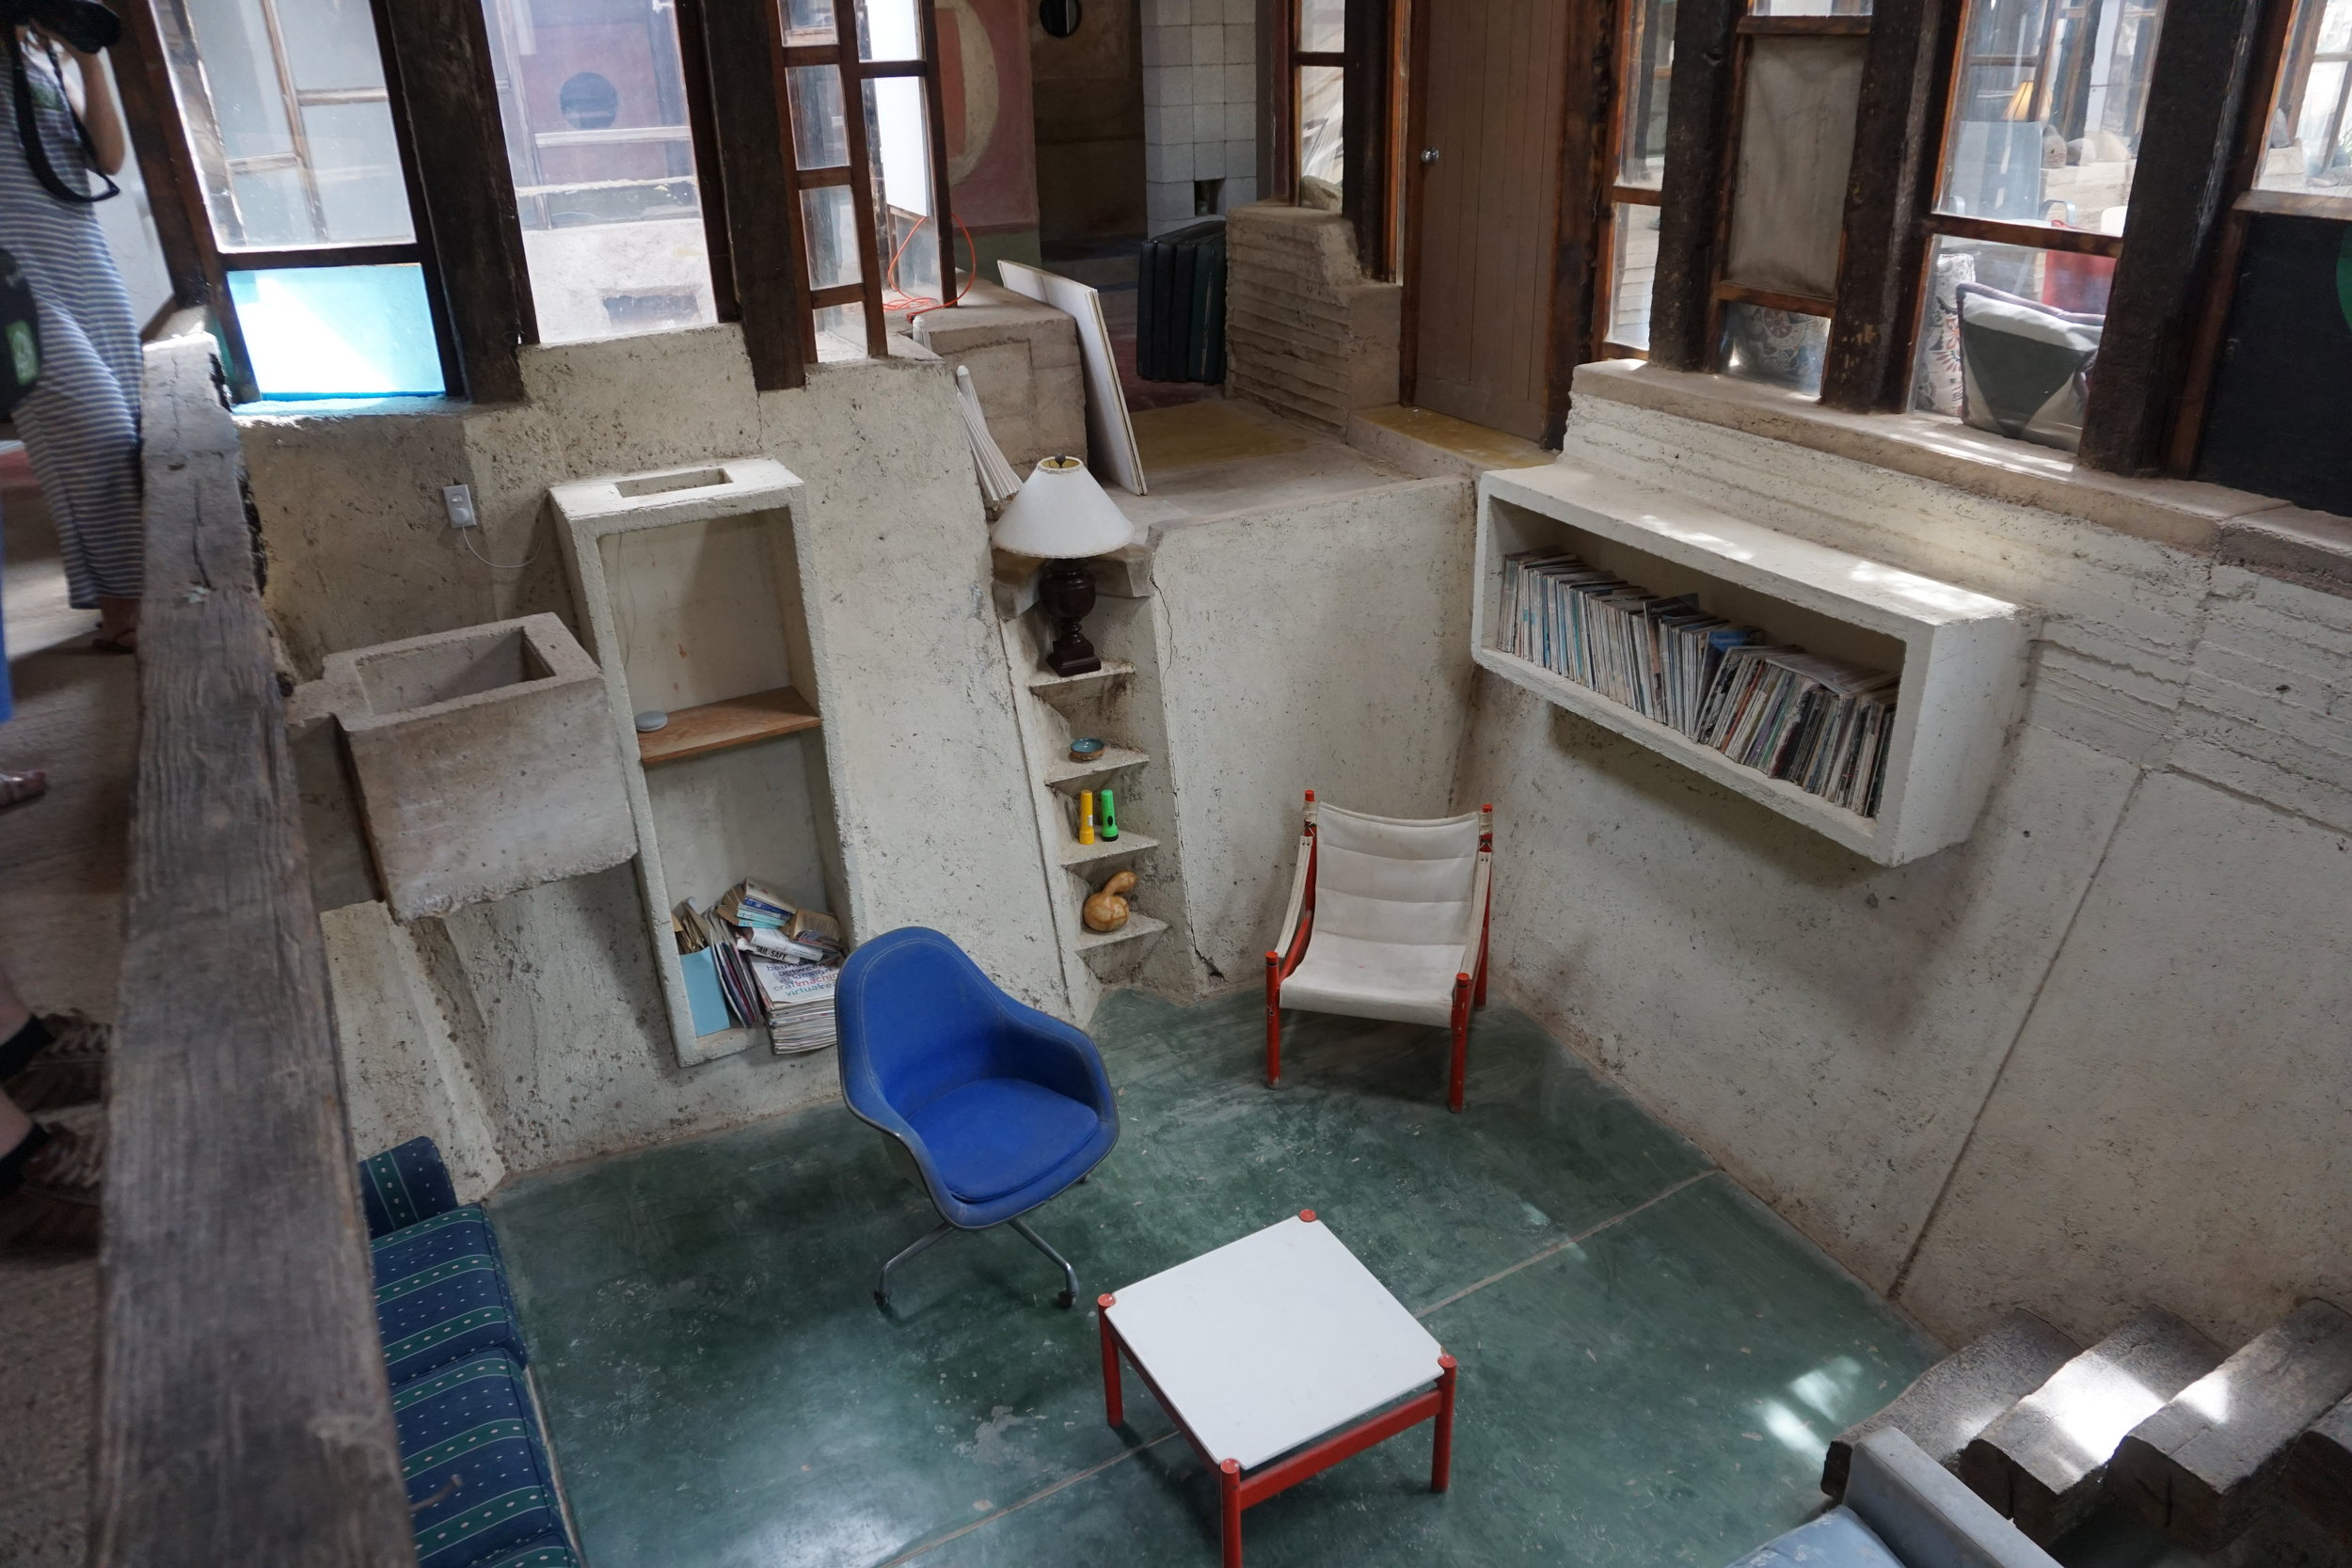 The residence spaces for workers and artists.